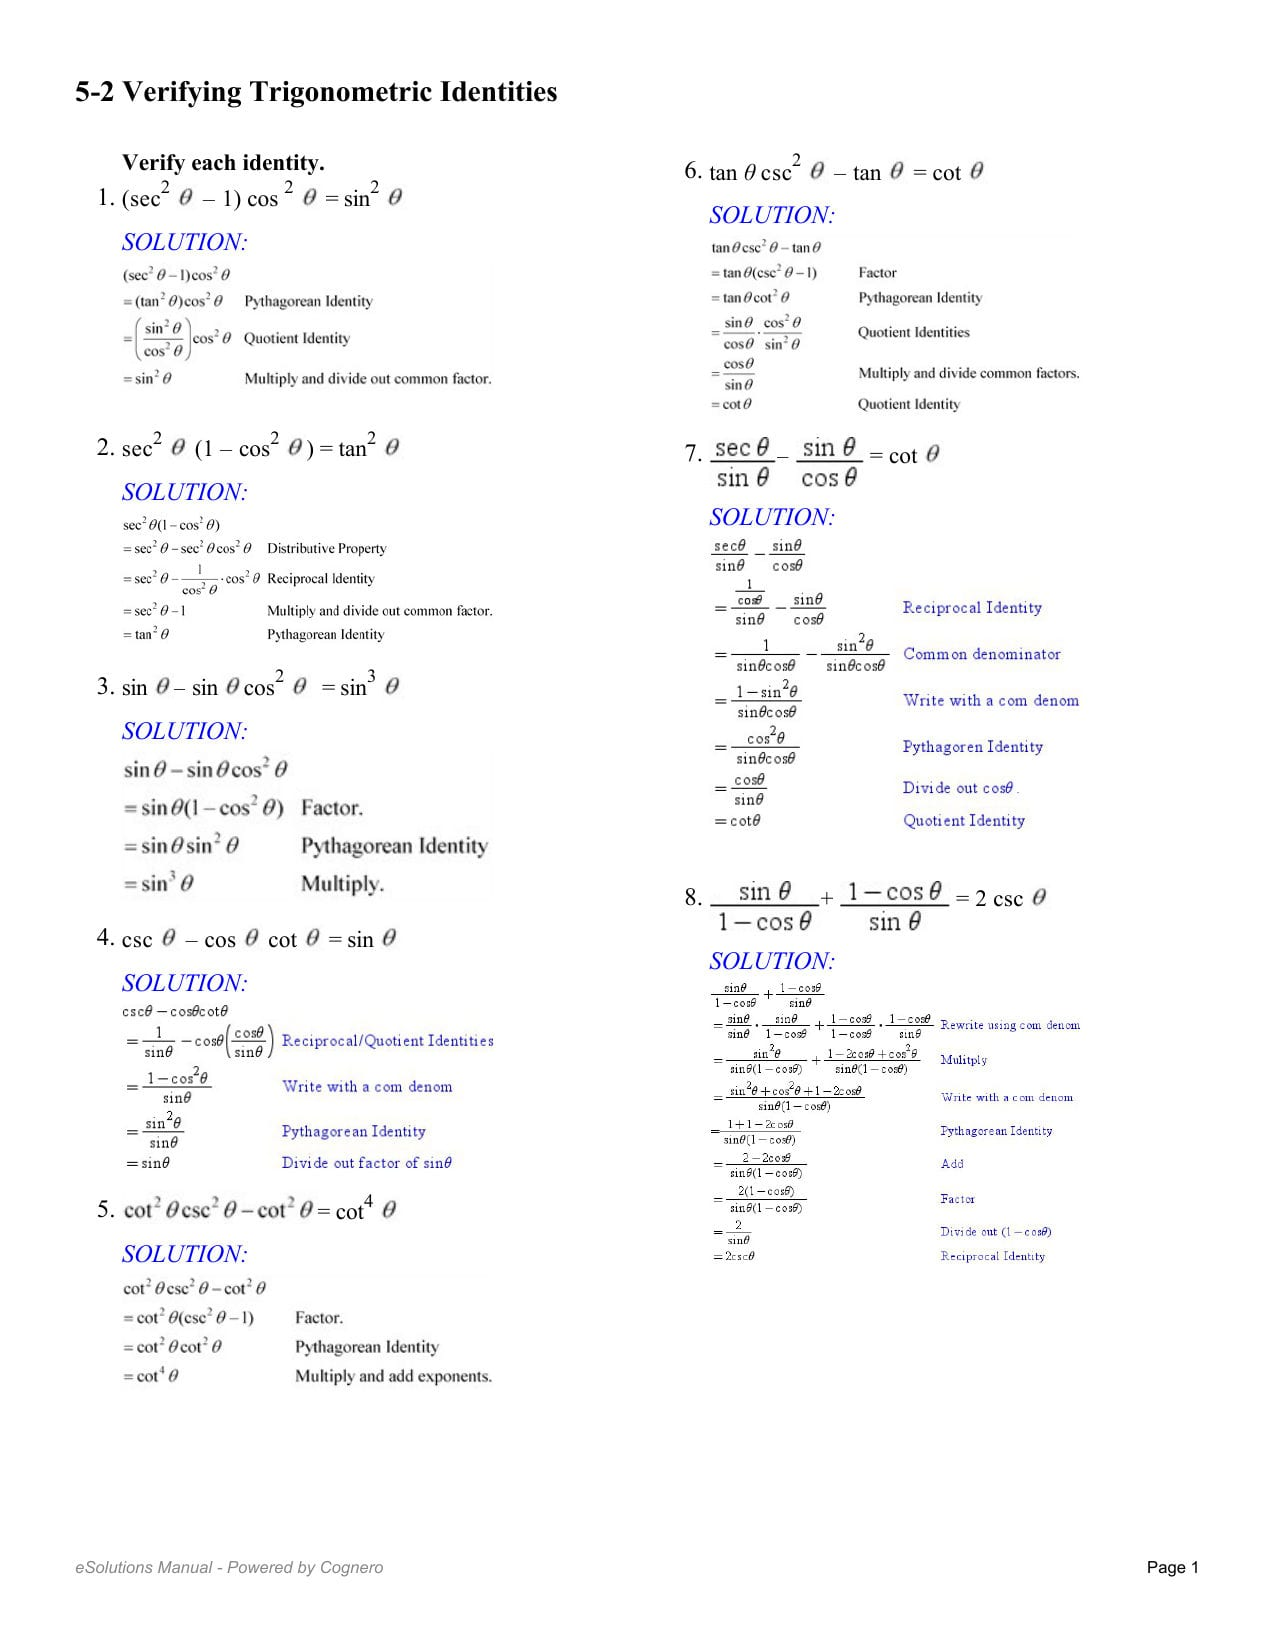 Worksheet With Answers On Trigonometric Identities